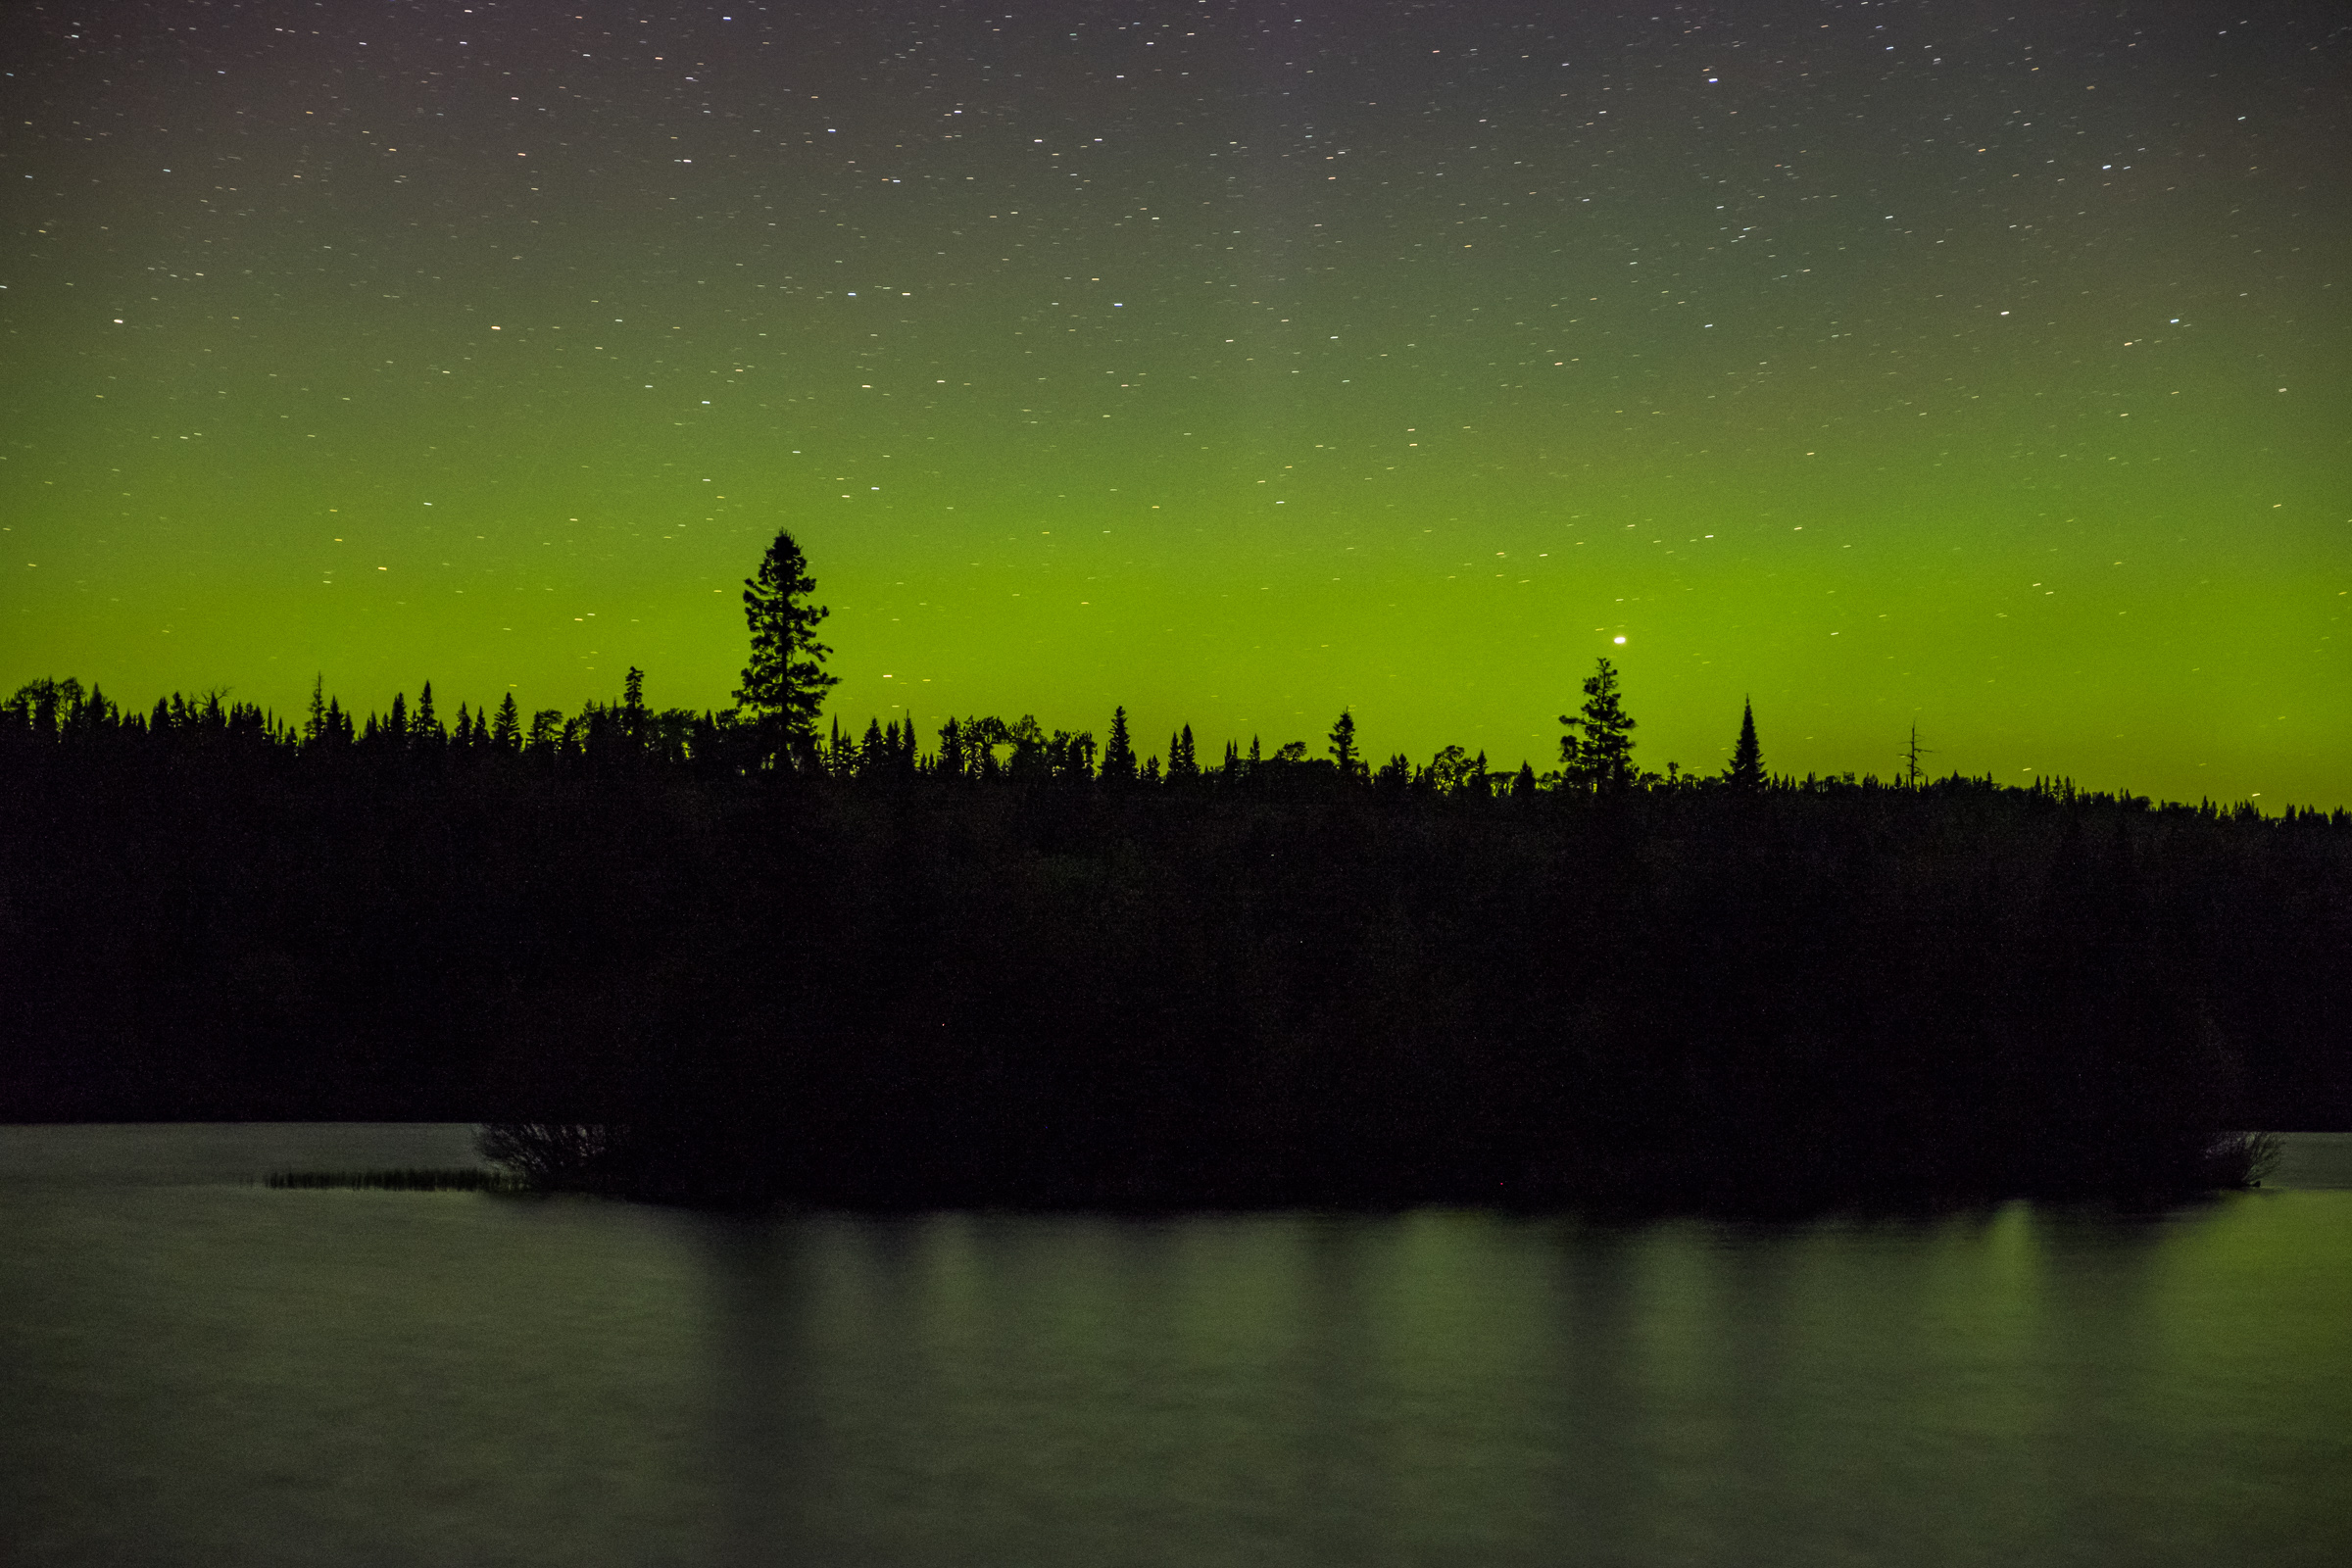 The glow of the Aurora Borealis (Northern Lights) in Isle Royale in Michigan.